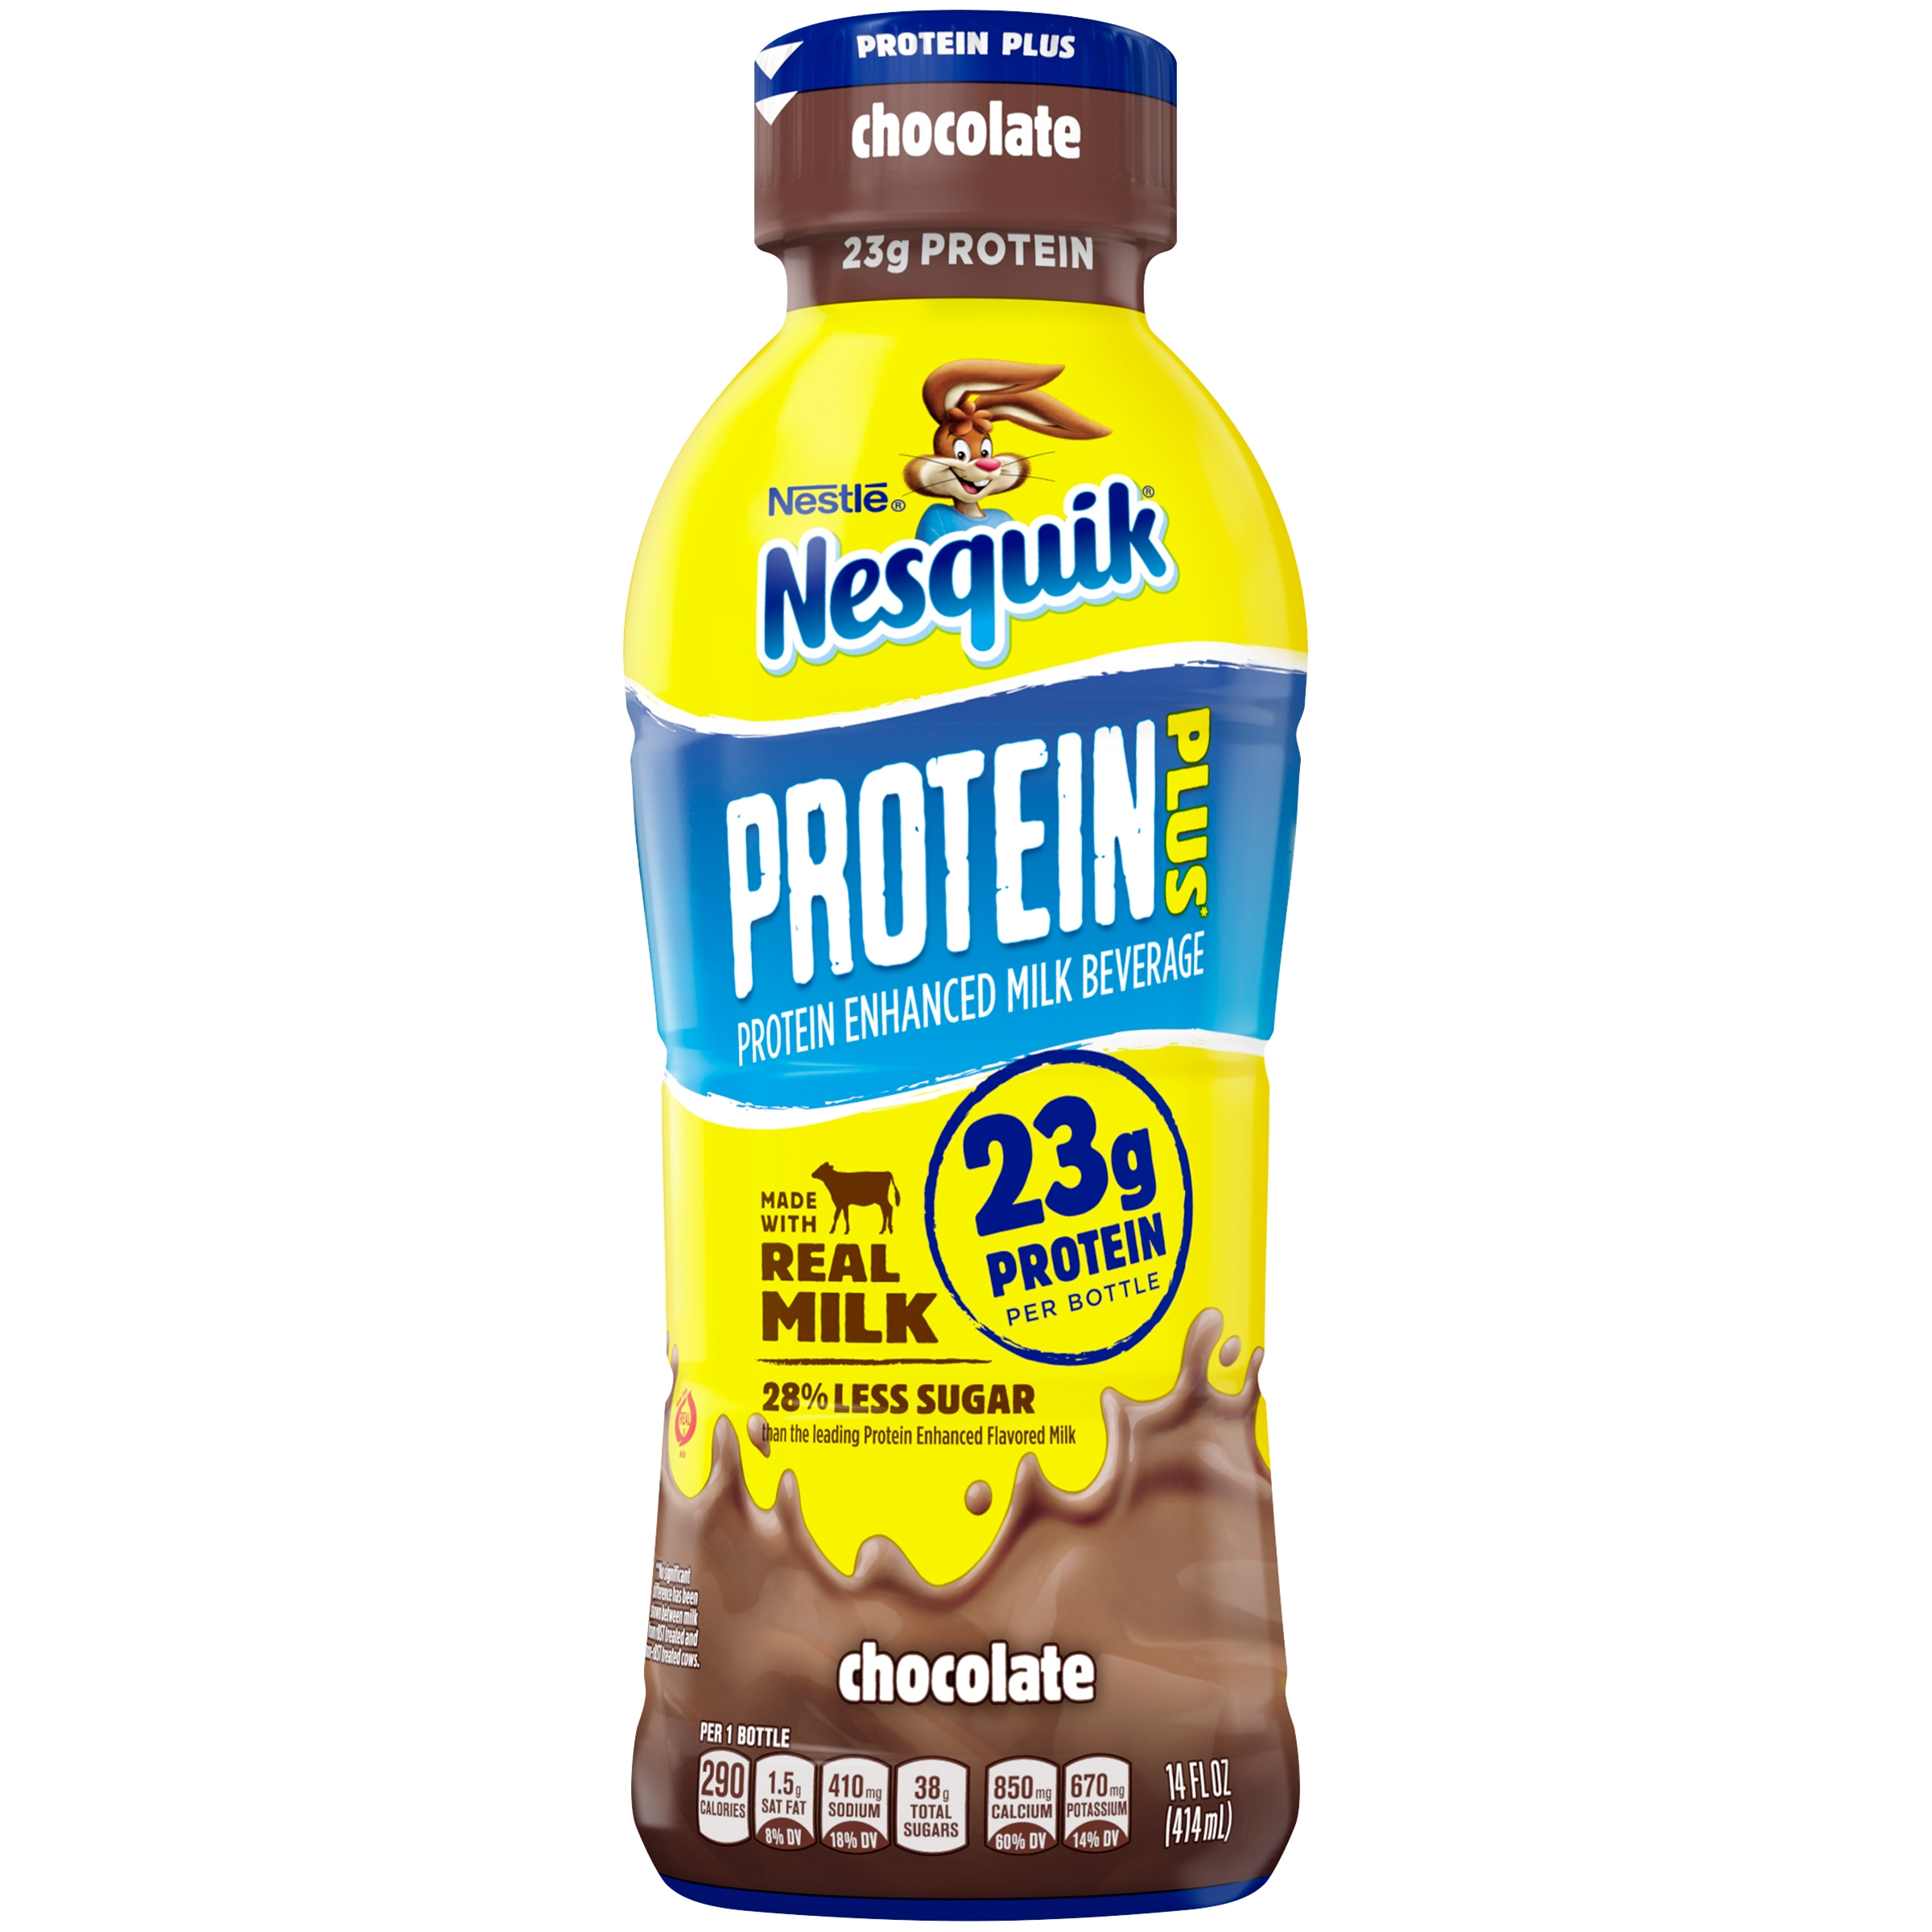 NESTLE NESQUIK Protein Plus Chocolate Flavored Low Fat Milk 14 fl. oz. Plastic Bottle